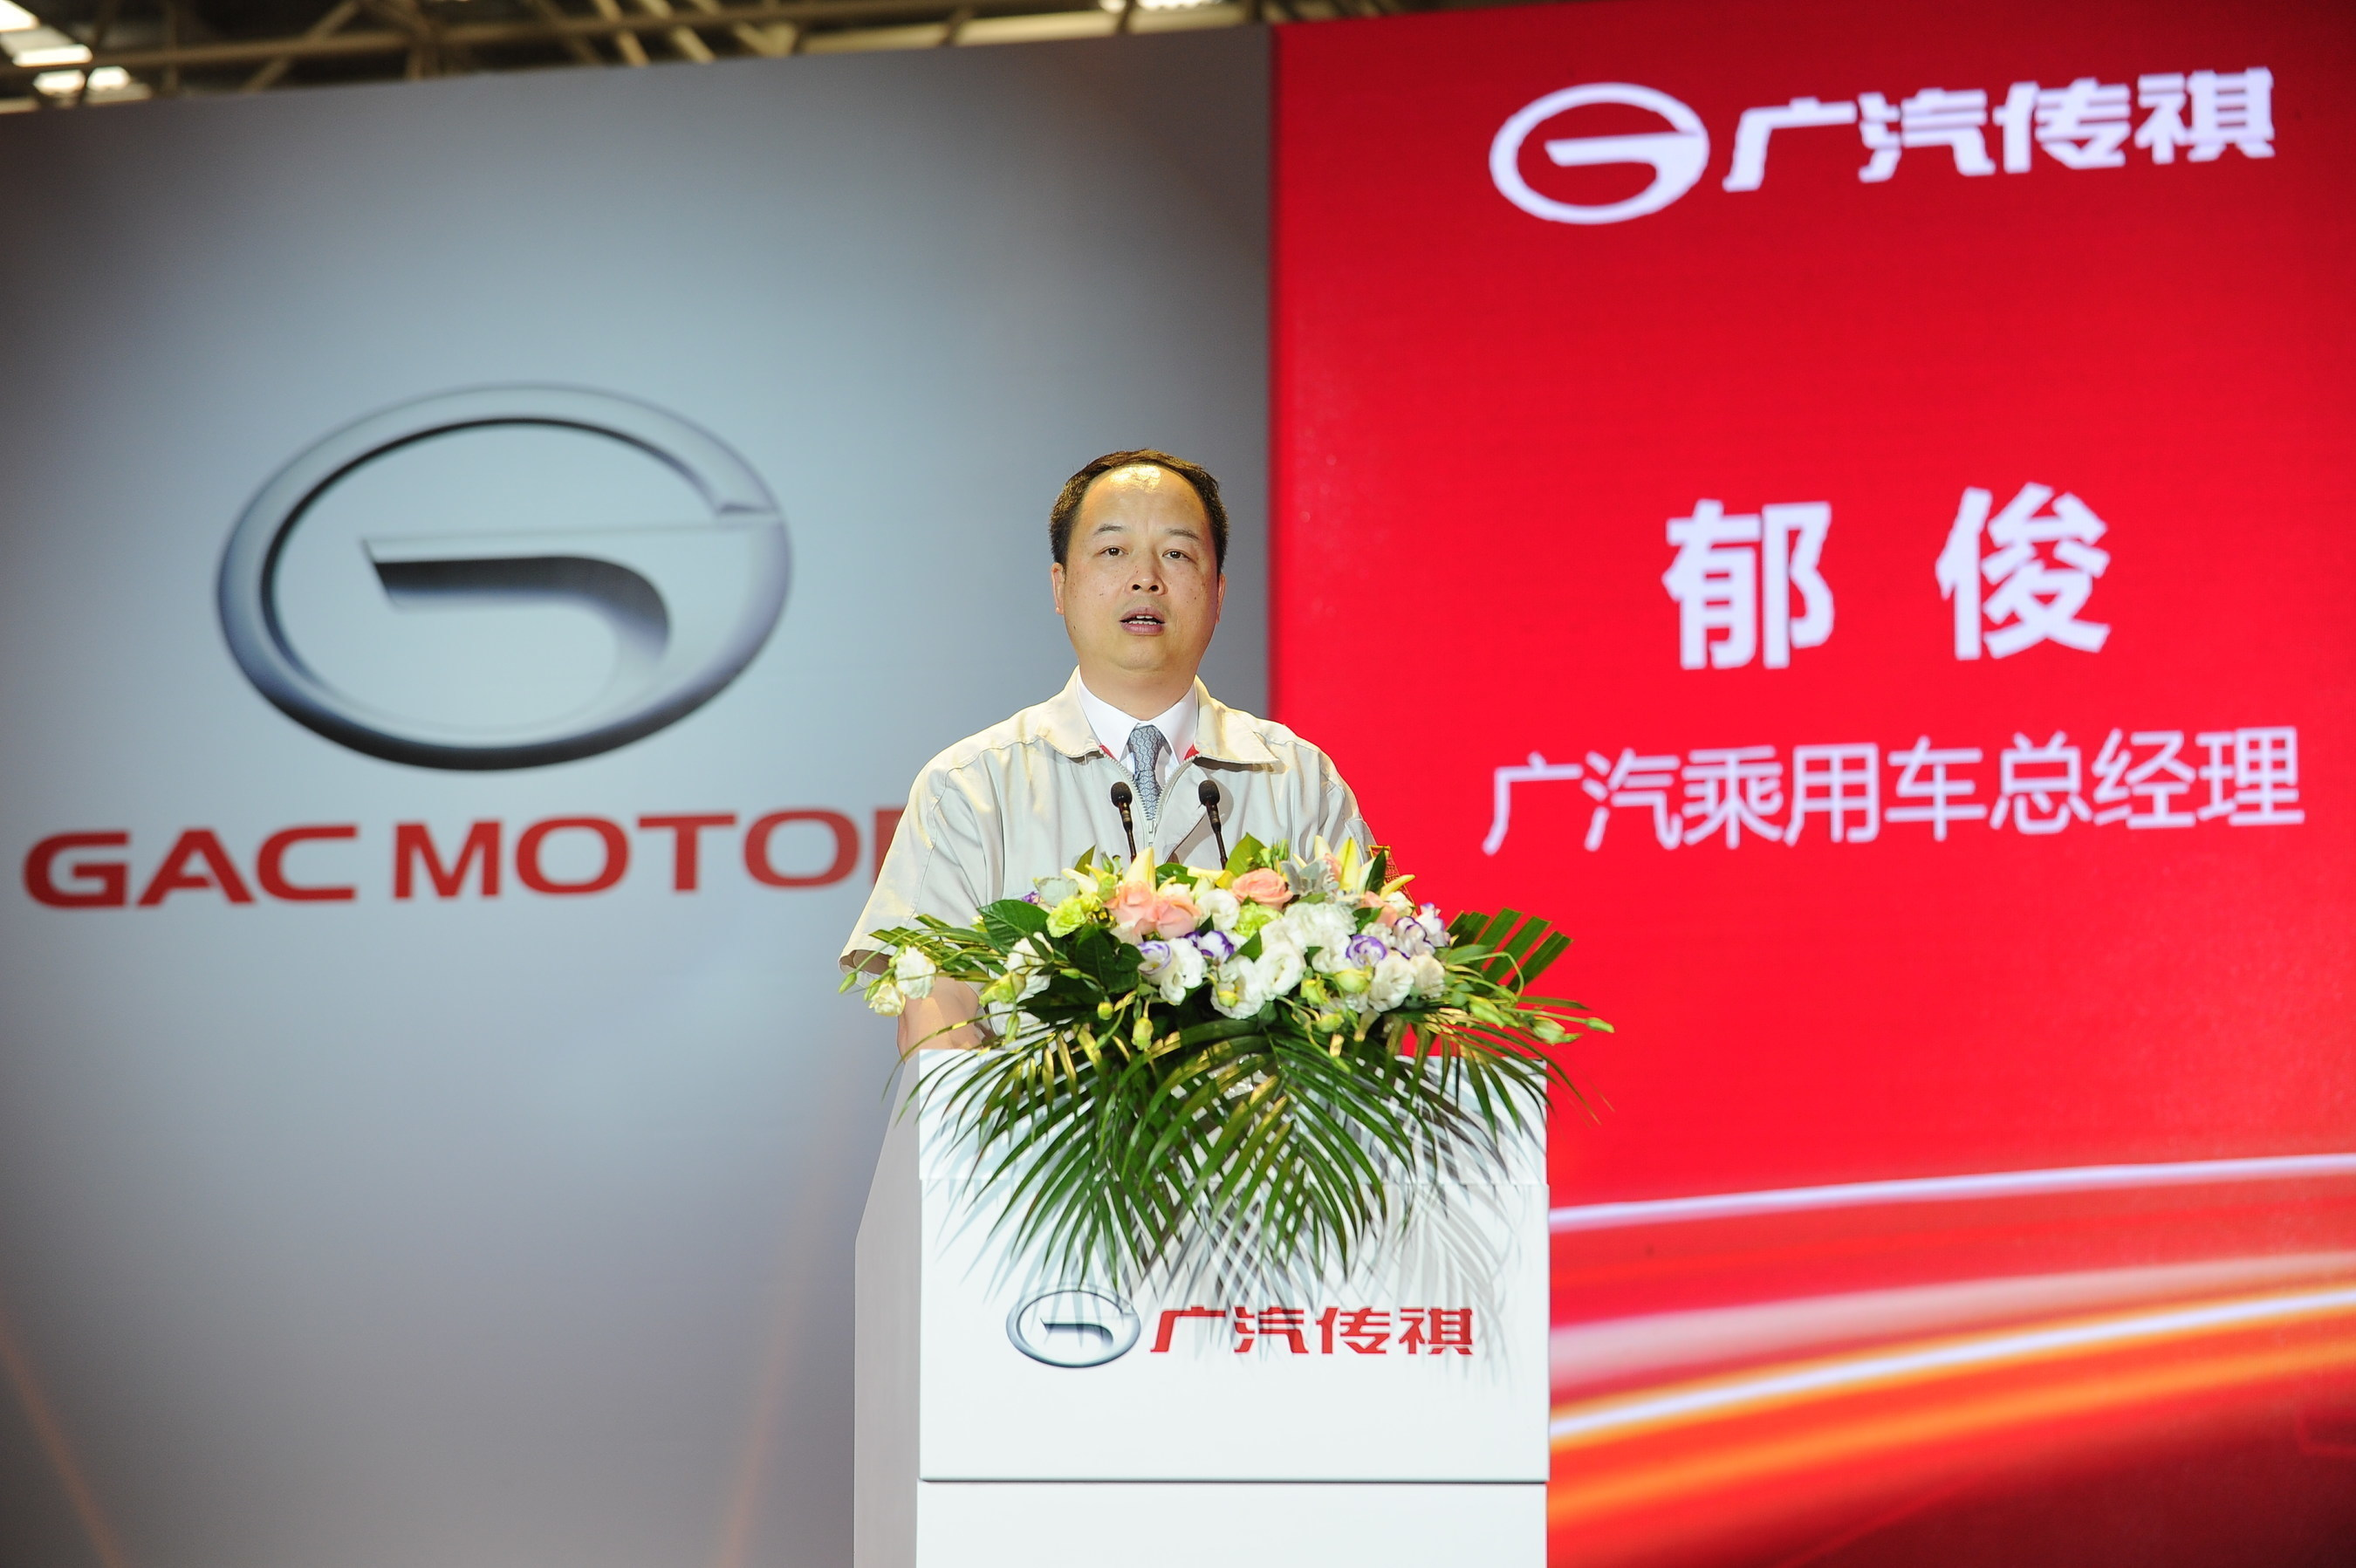 Jun Yu, general manager of GAC Motor, gave a speech at the company's completion ceremony of its new phase II factory.